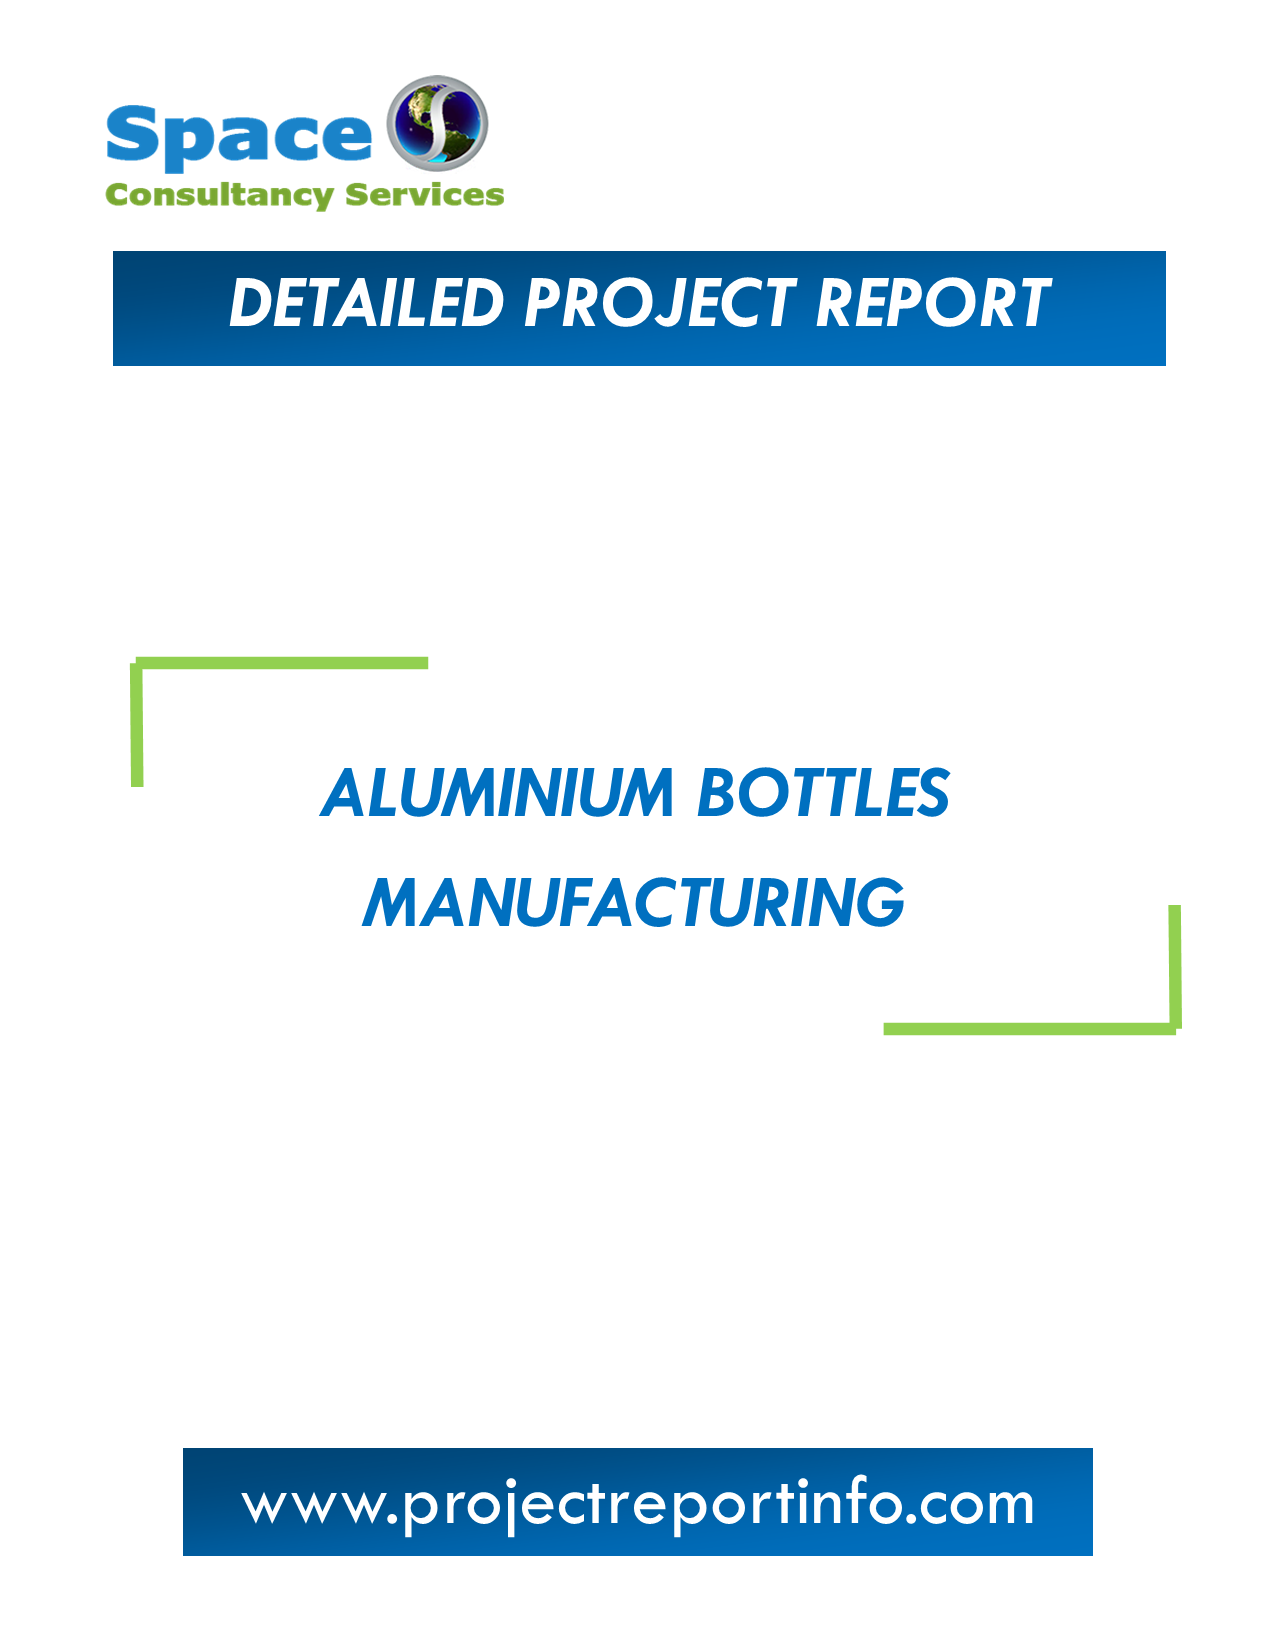 Project Report on Aluminium Bottles Manufacturing